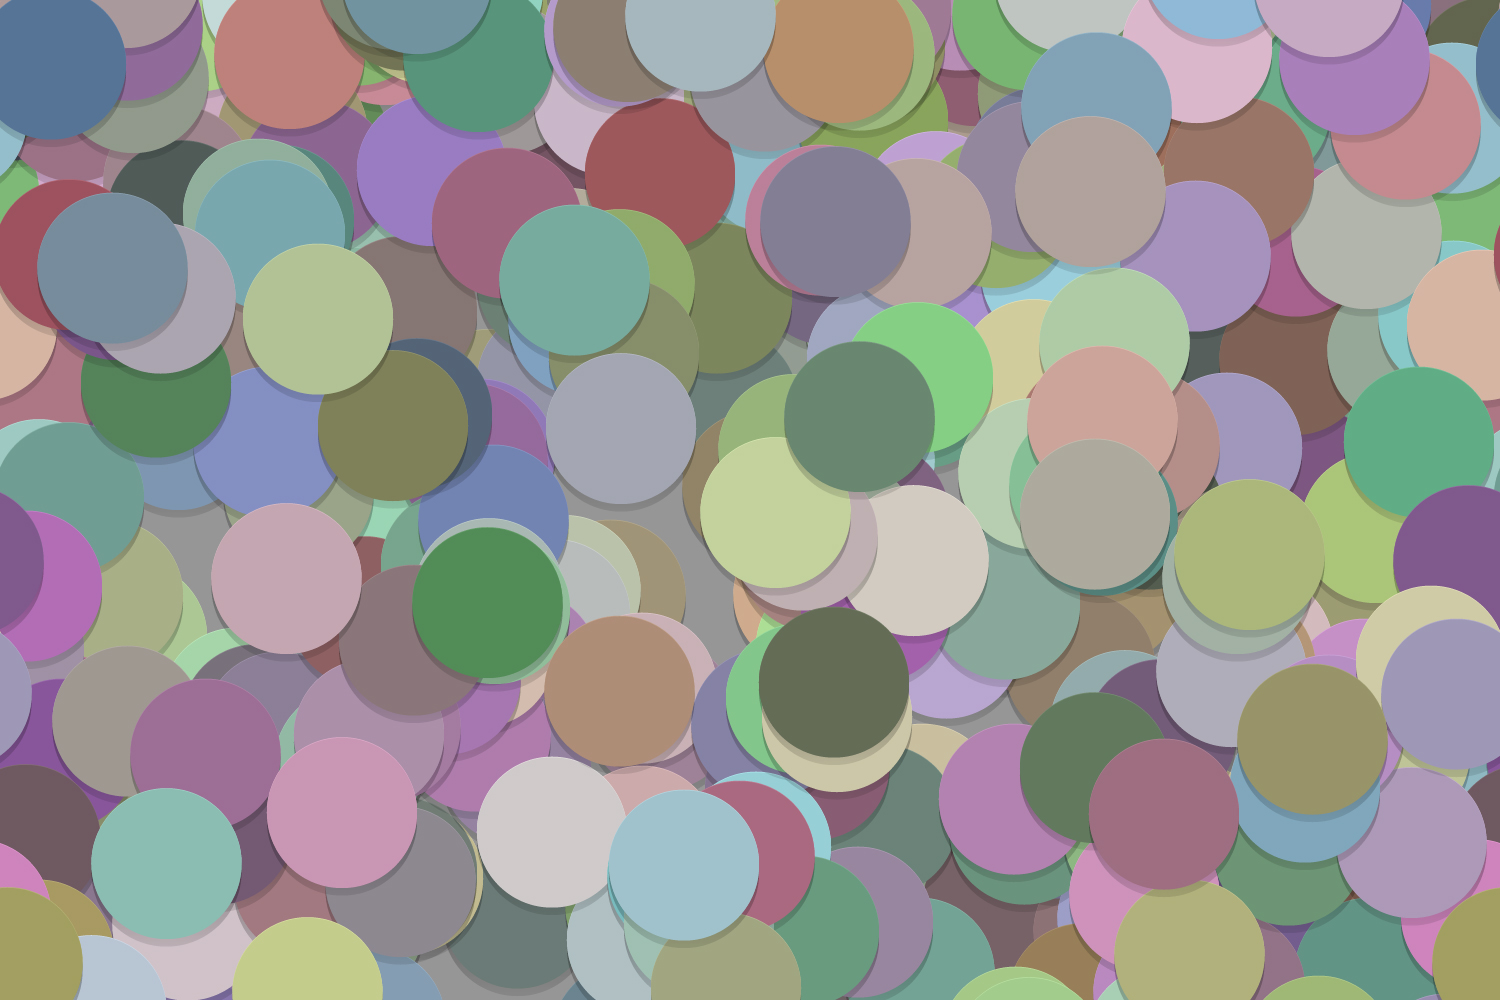 40 Seamless Circle Backgrounds (AI, EPS, JPG 5000x5000) example image 3